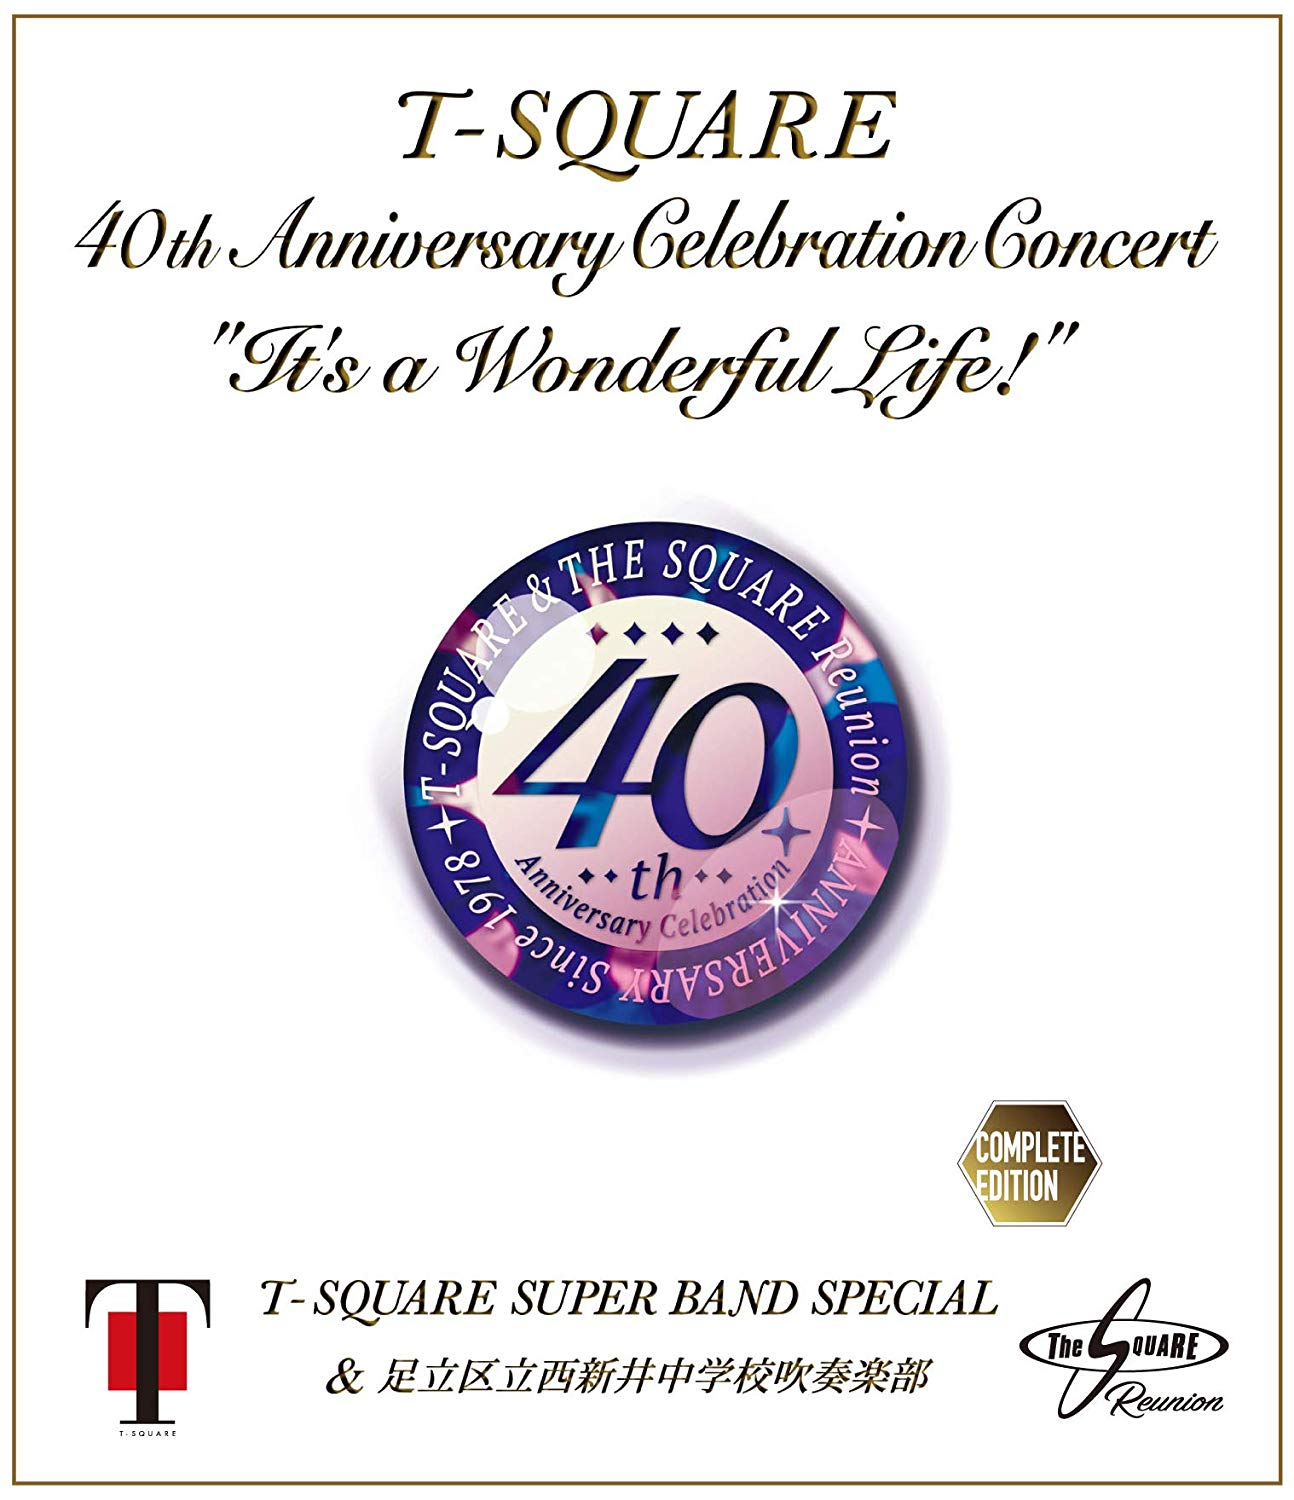 "40th Anniversary Celebration Concert ""It's a Wonderful Life!"" Complete Edition"